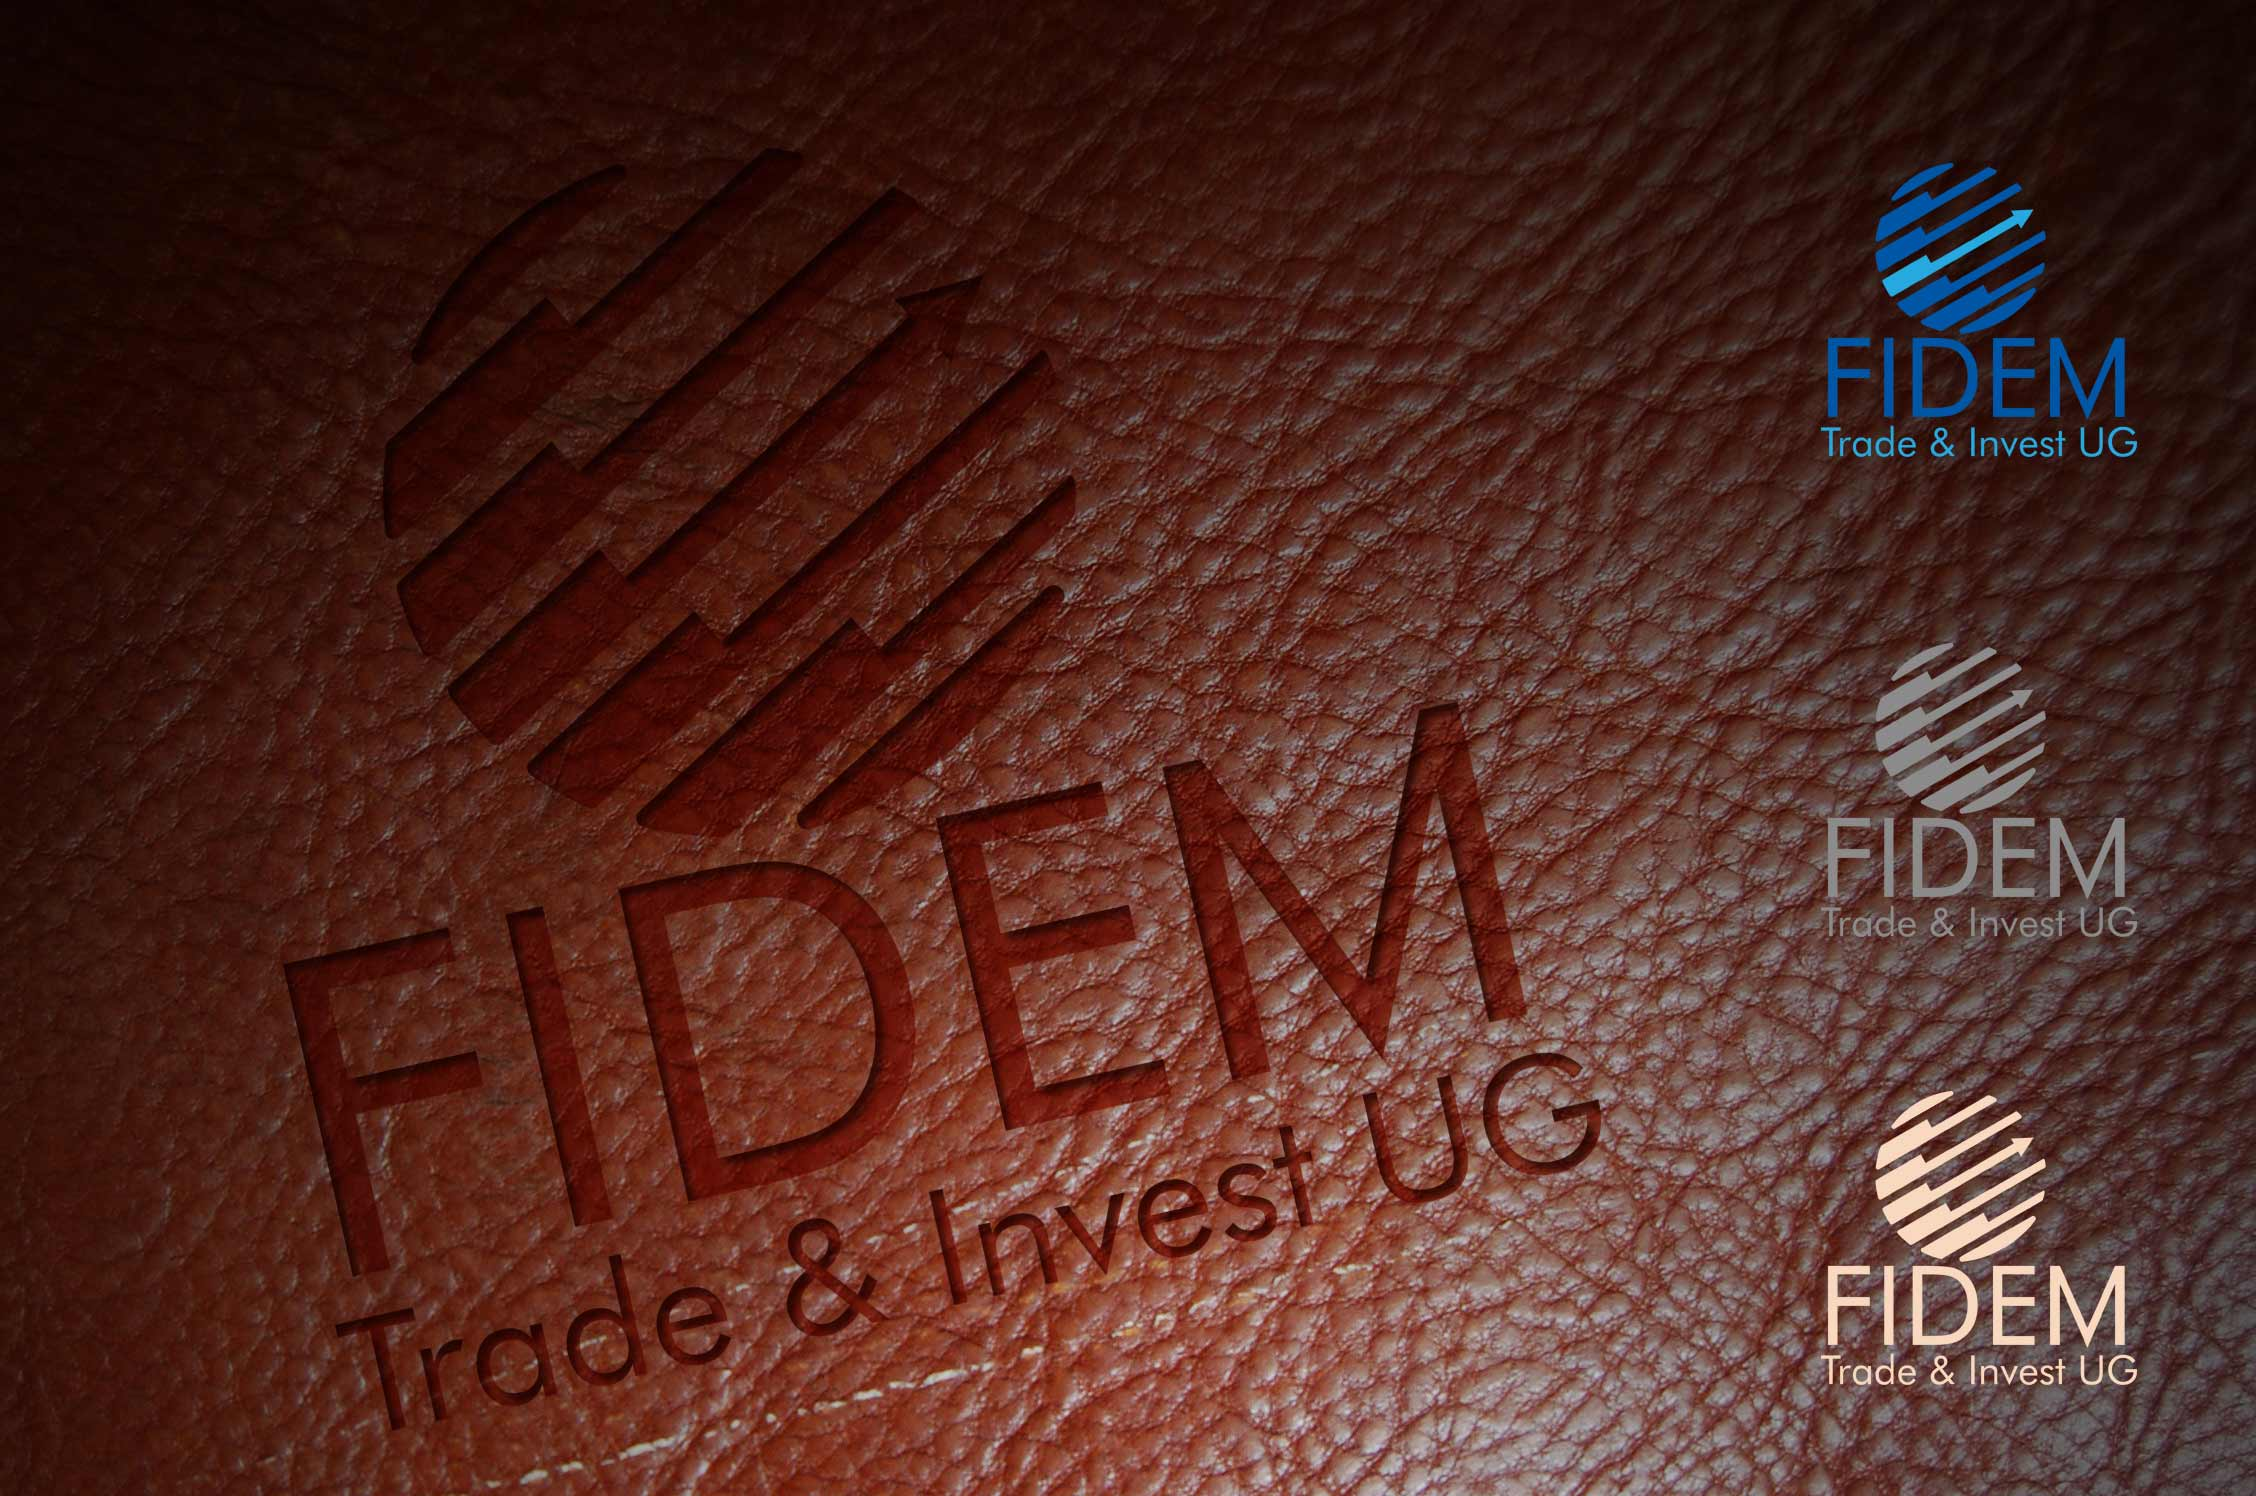 Logo Design by lagalag - Entry No. 634 in the Logo Design Contest Professional Logo Design for FIDEM Trade & Invest UG.